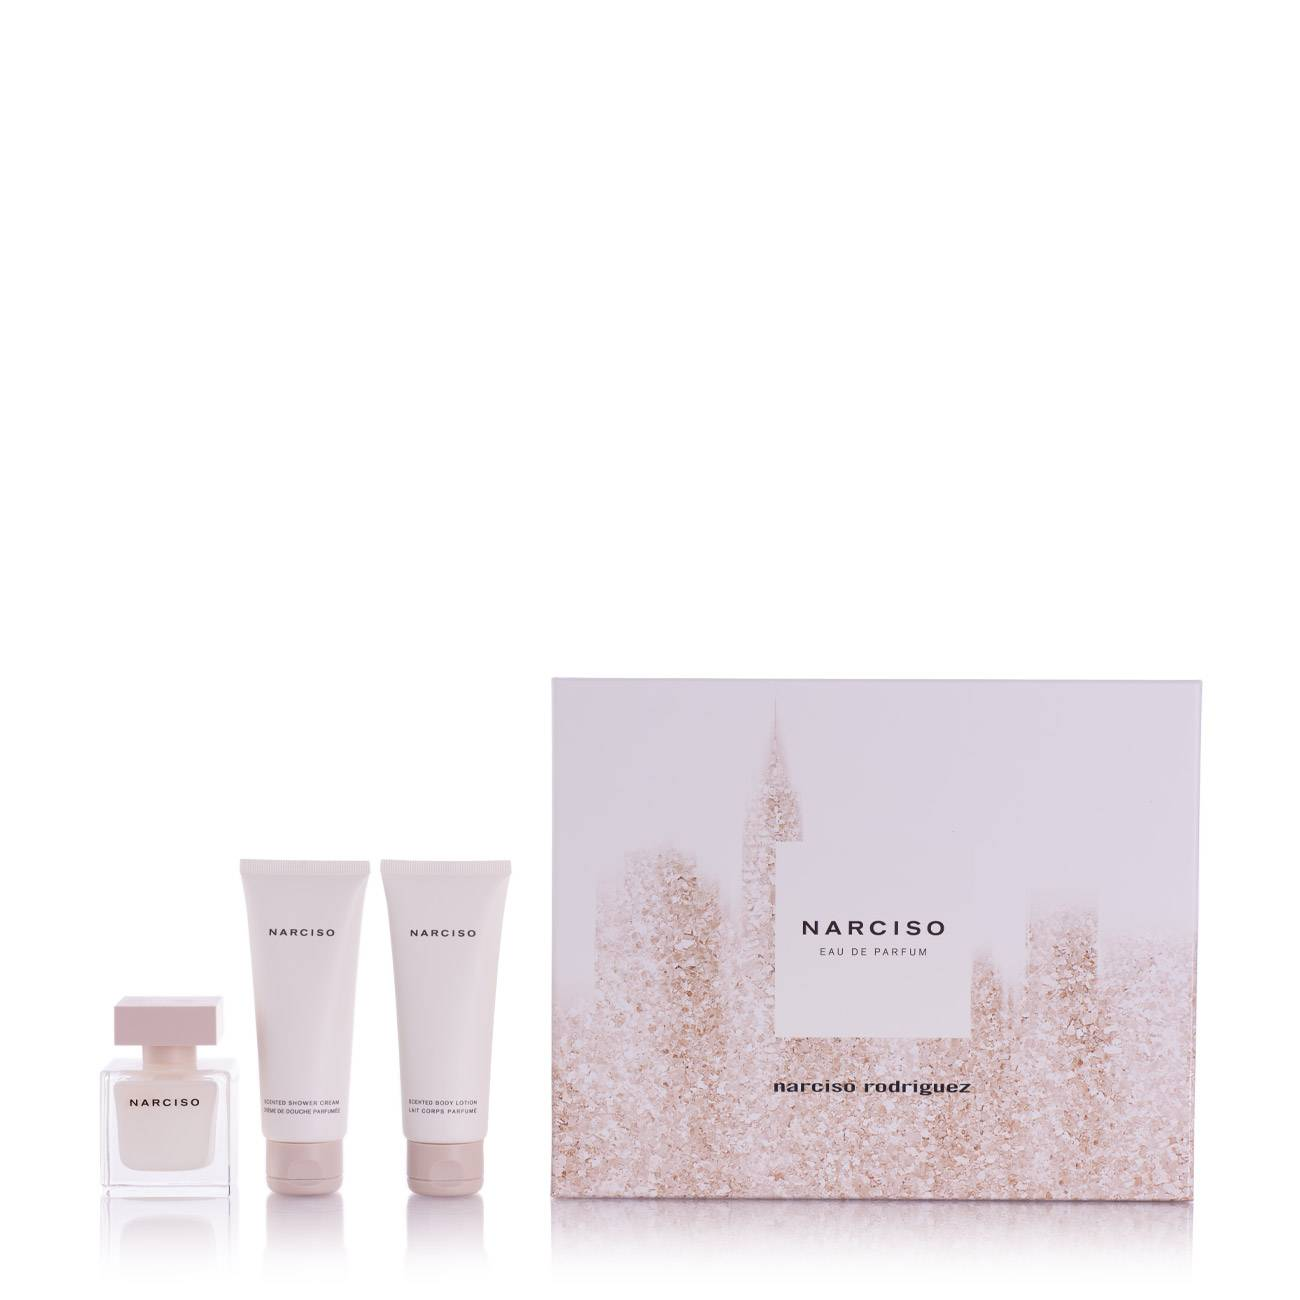 NARCISO SET 200ml imagine produs